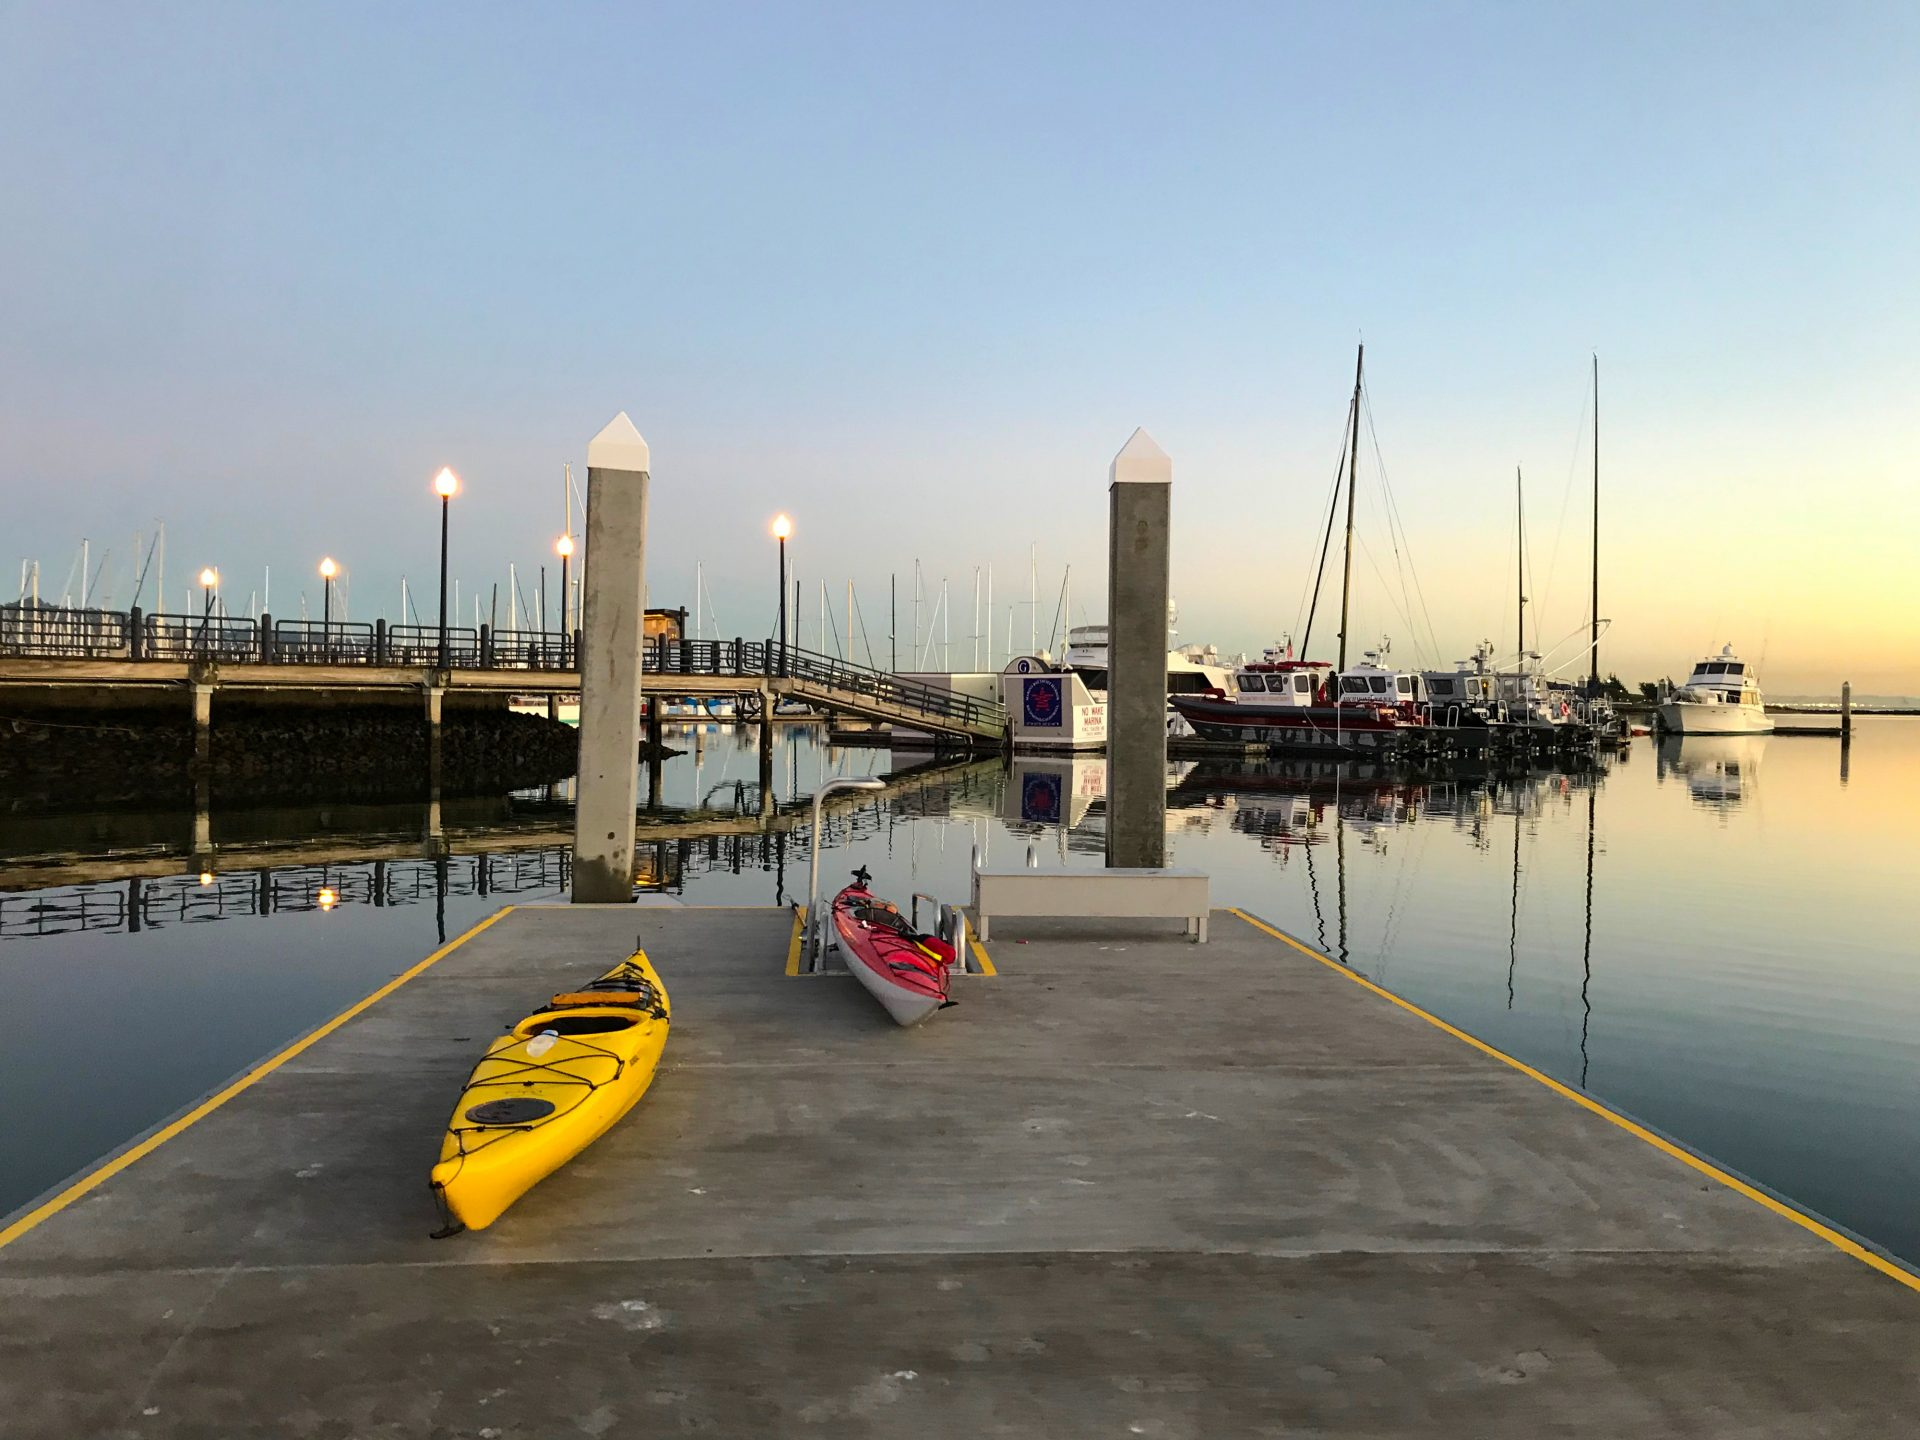 2 kayaks on concrete pier